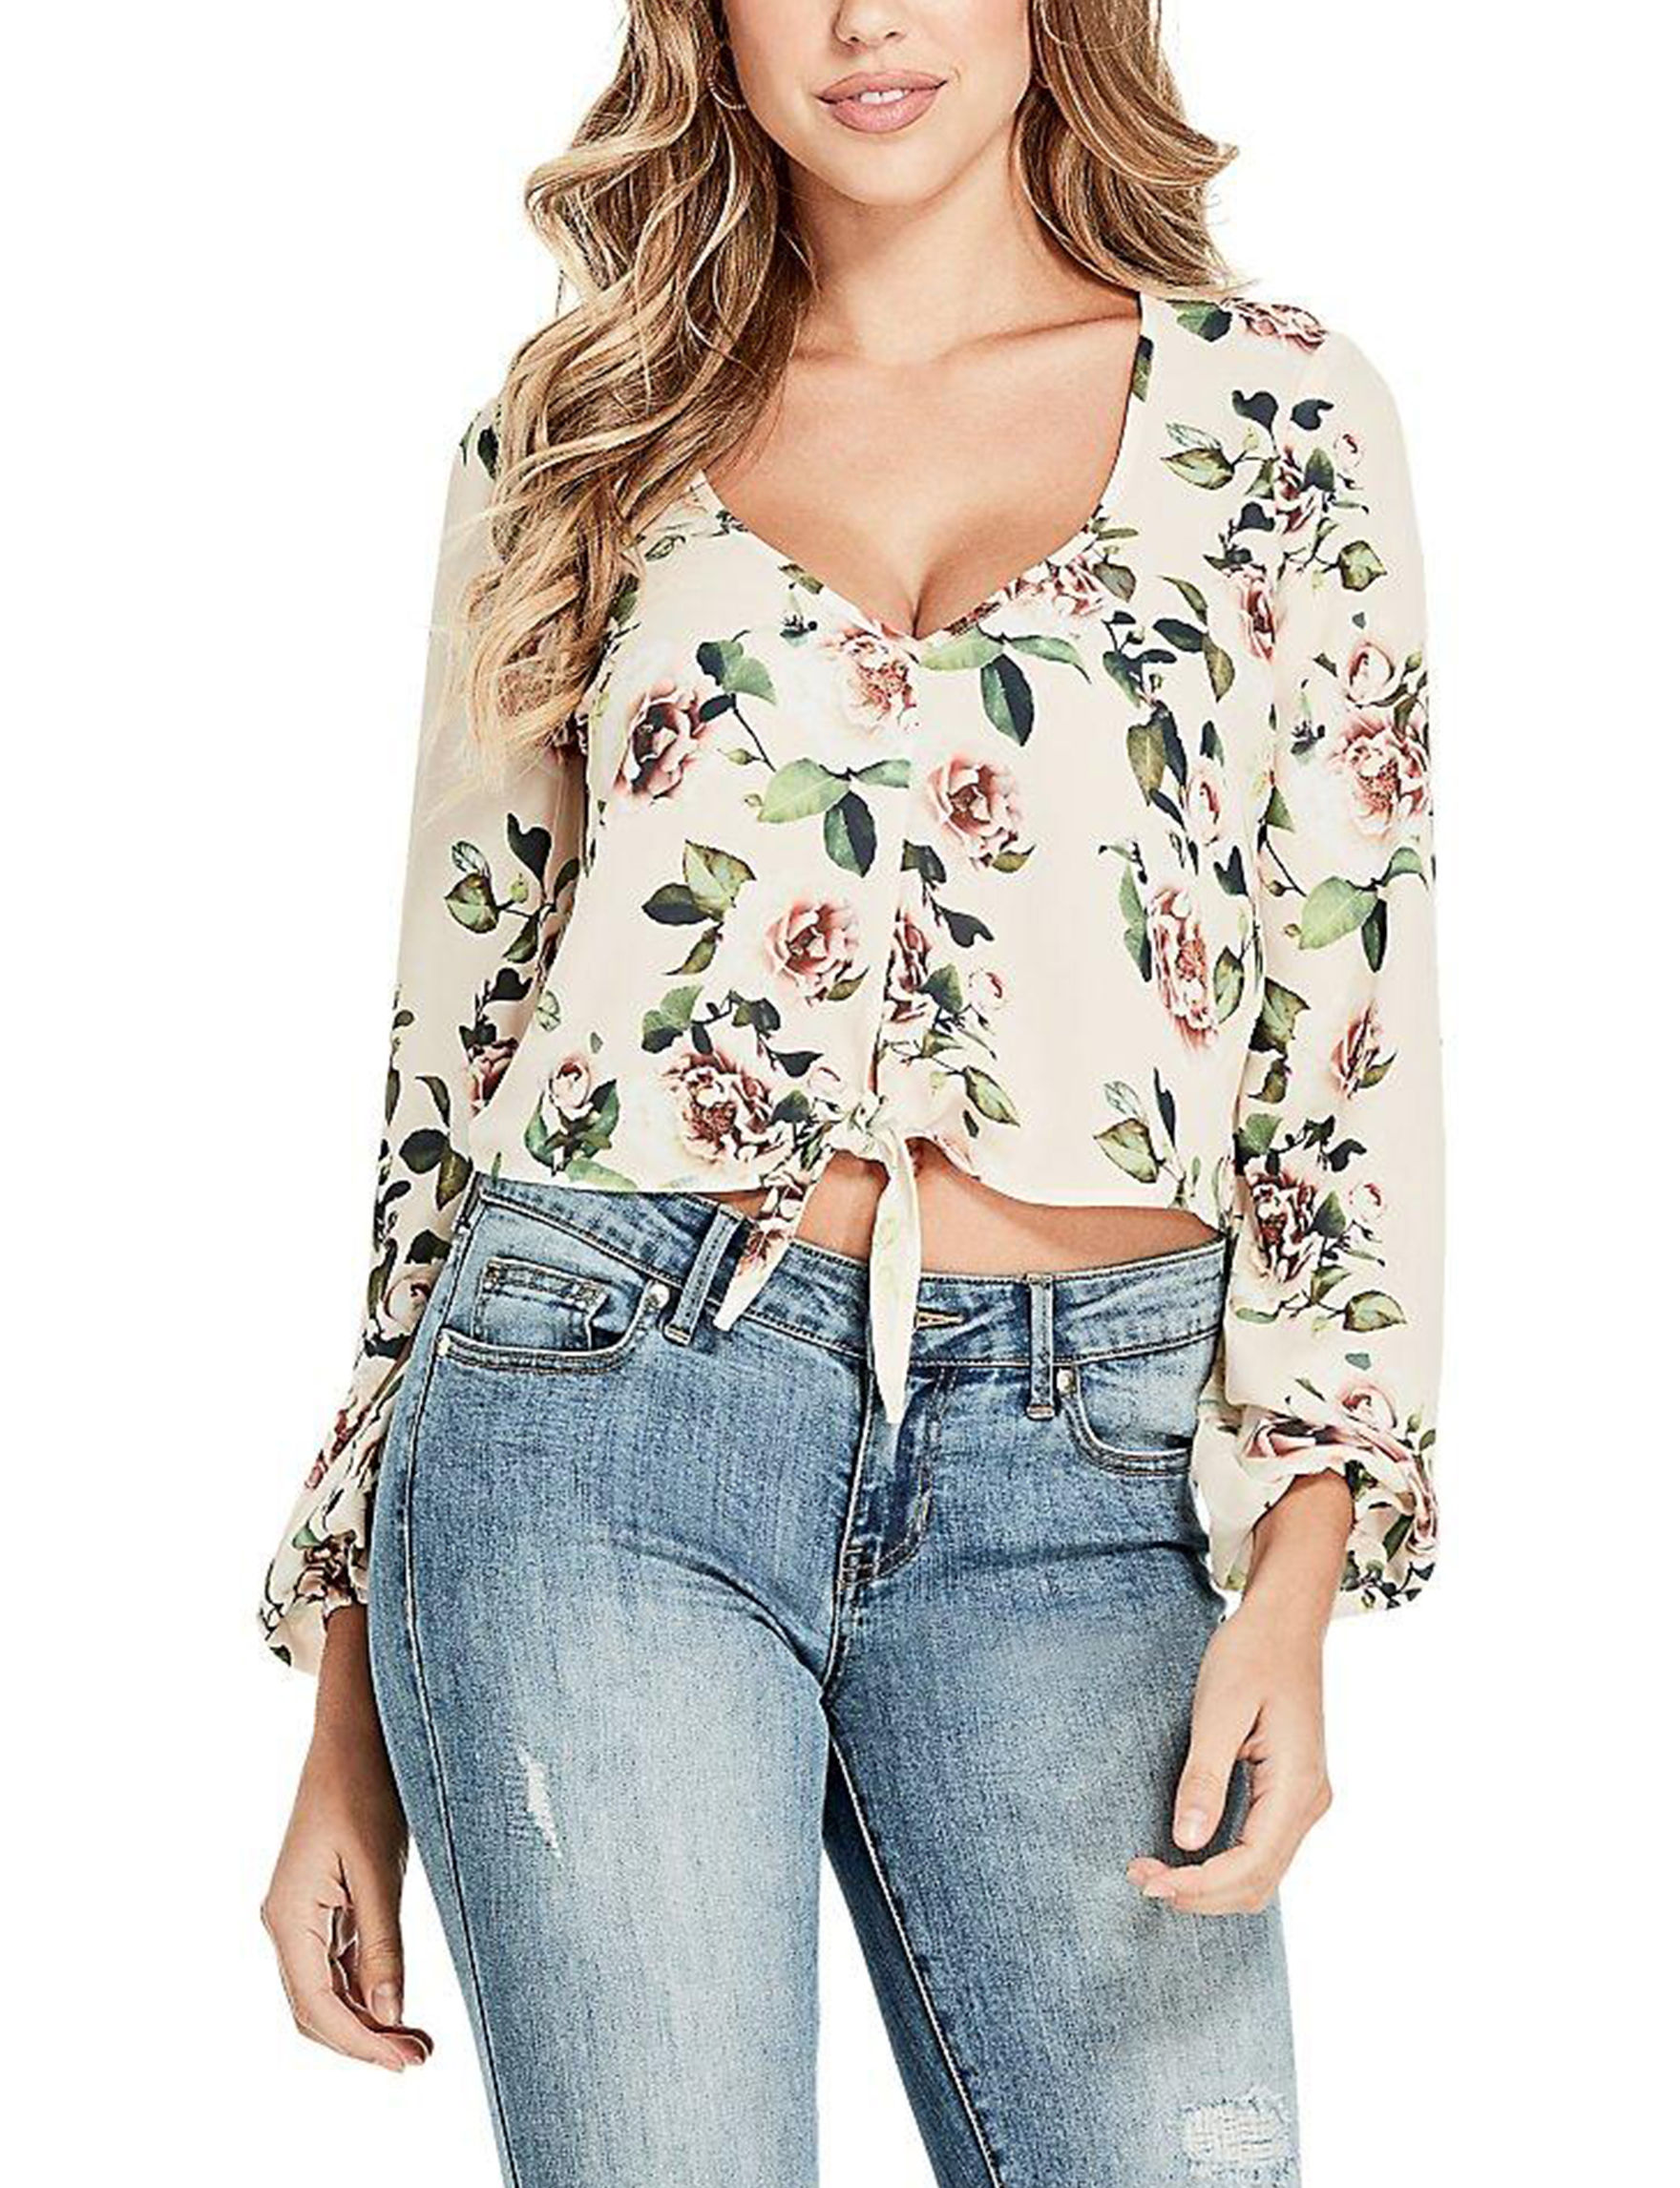 G by Guess Beige Floral Crop Tops Shirts & Blouses